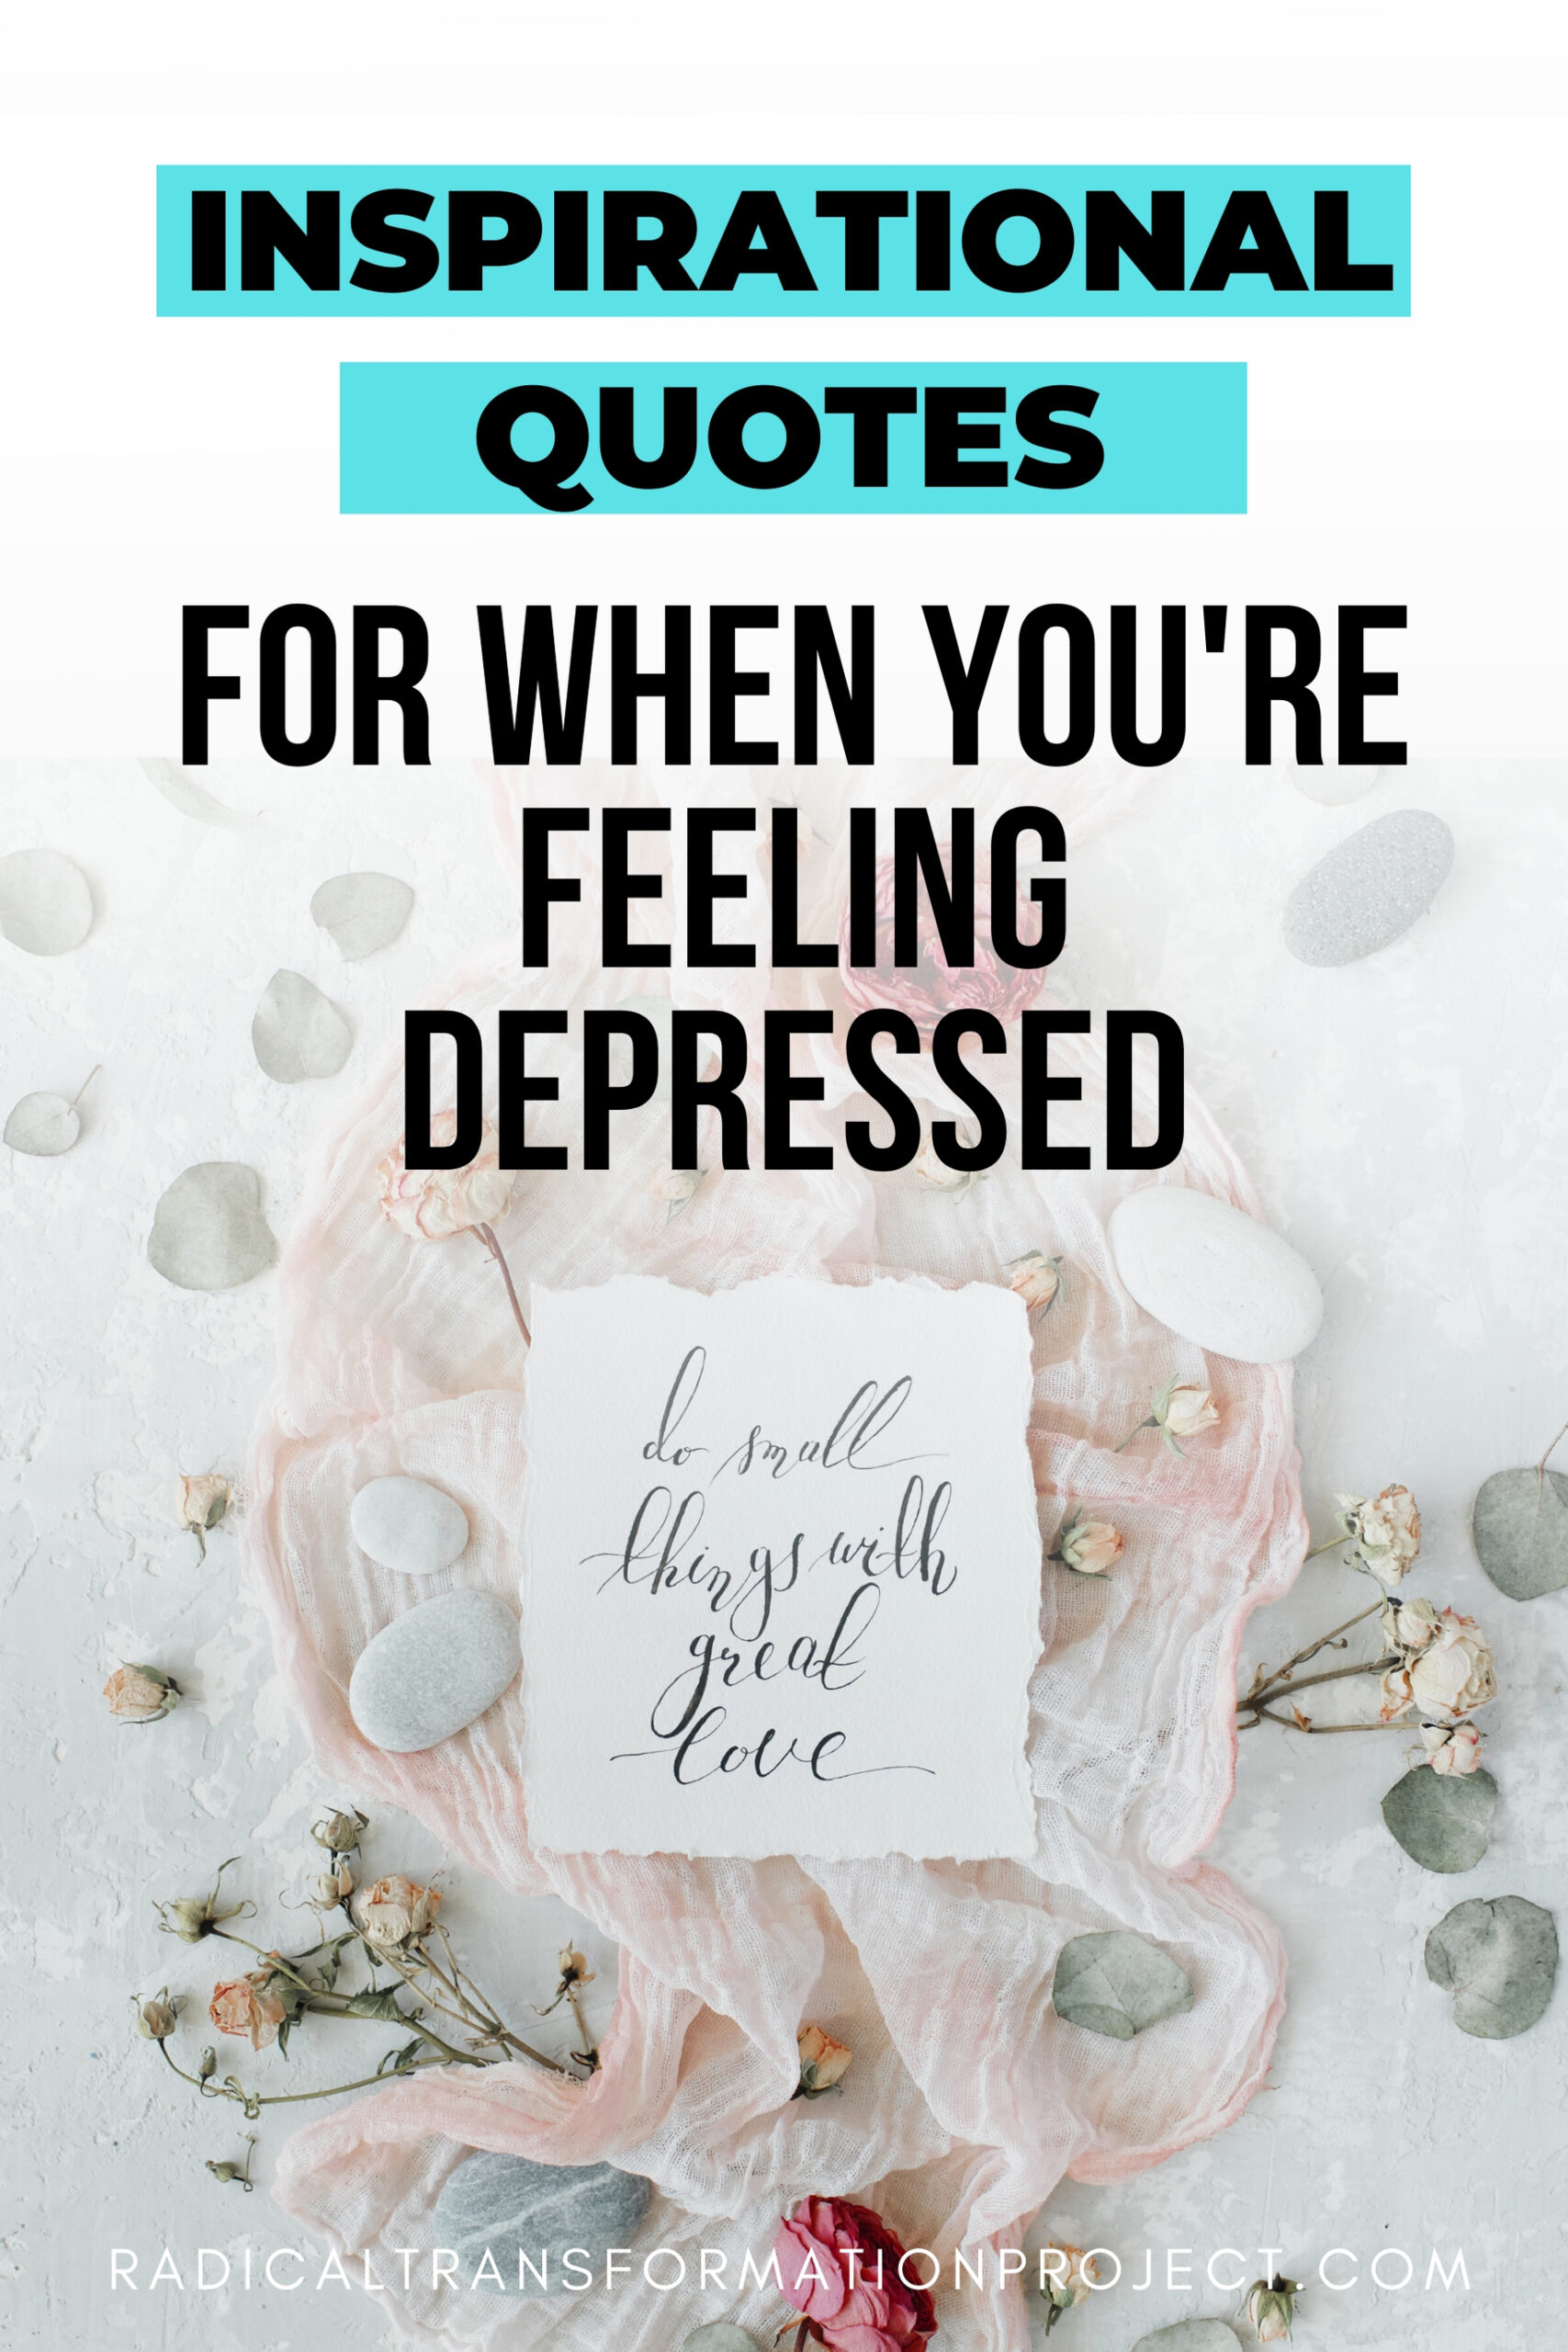 inspirational quotes for when you're feeling depressed